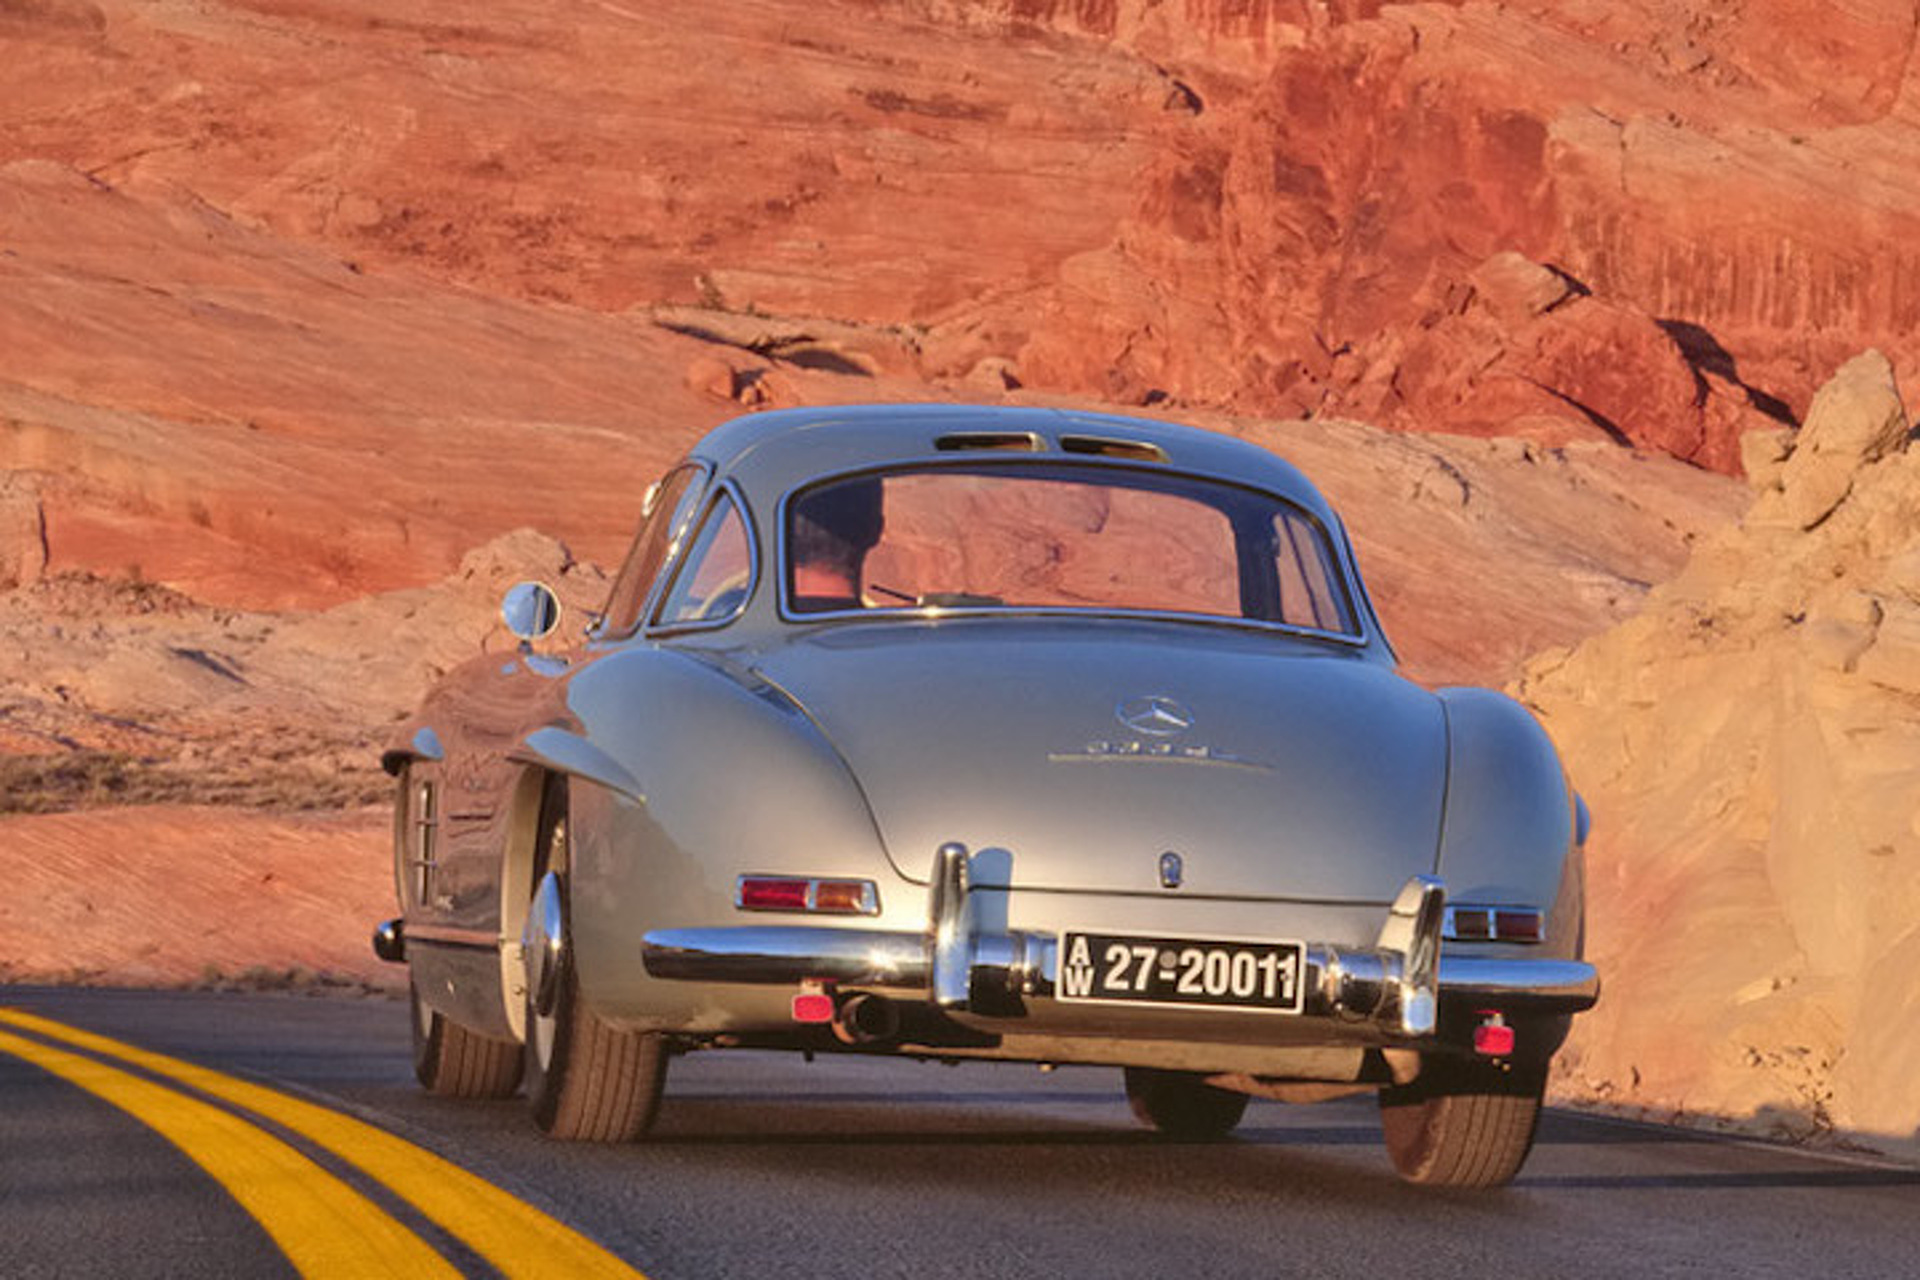 Mercedes-Benz 300SL: The Original Supercar